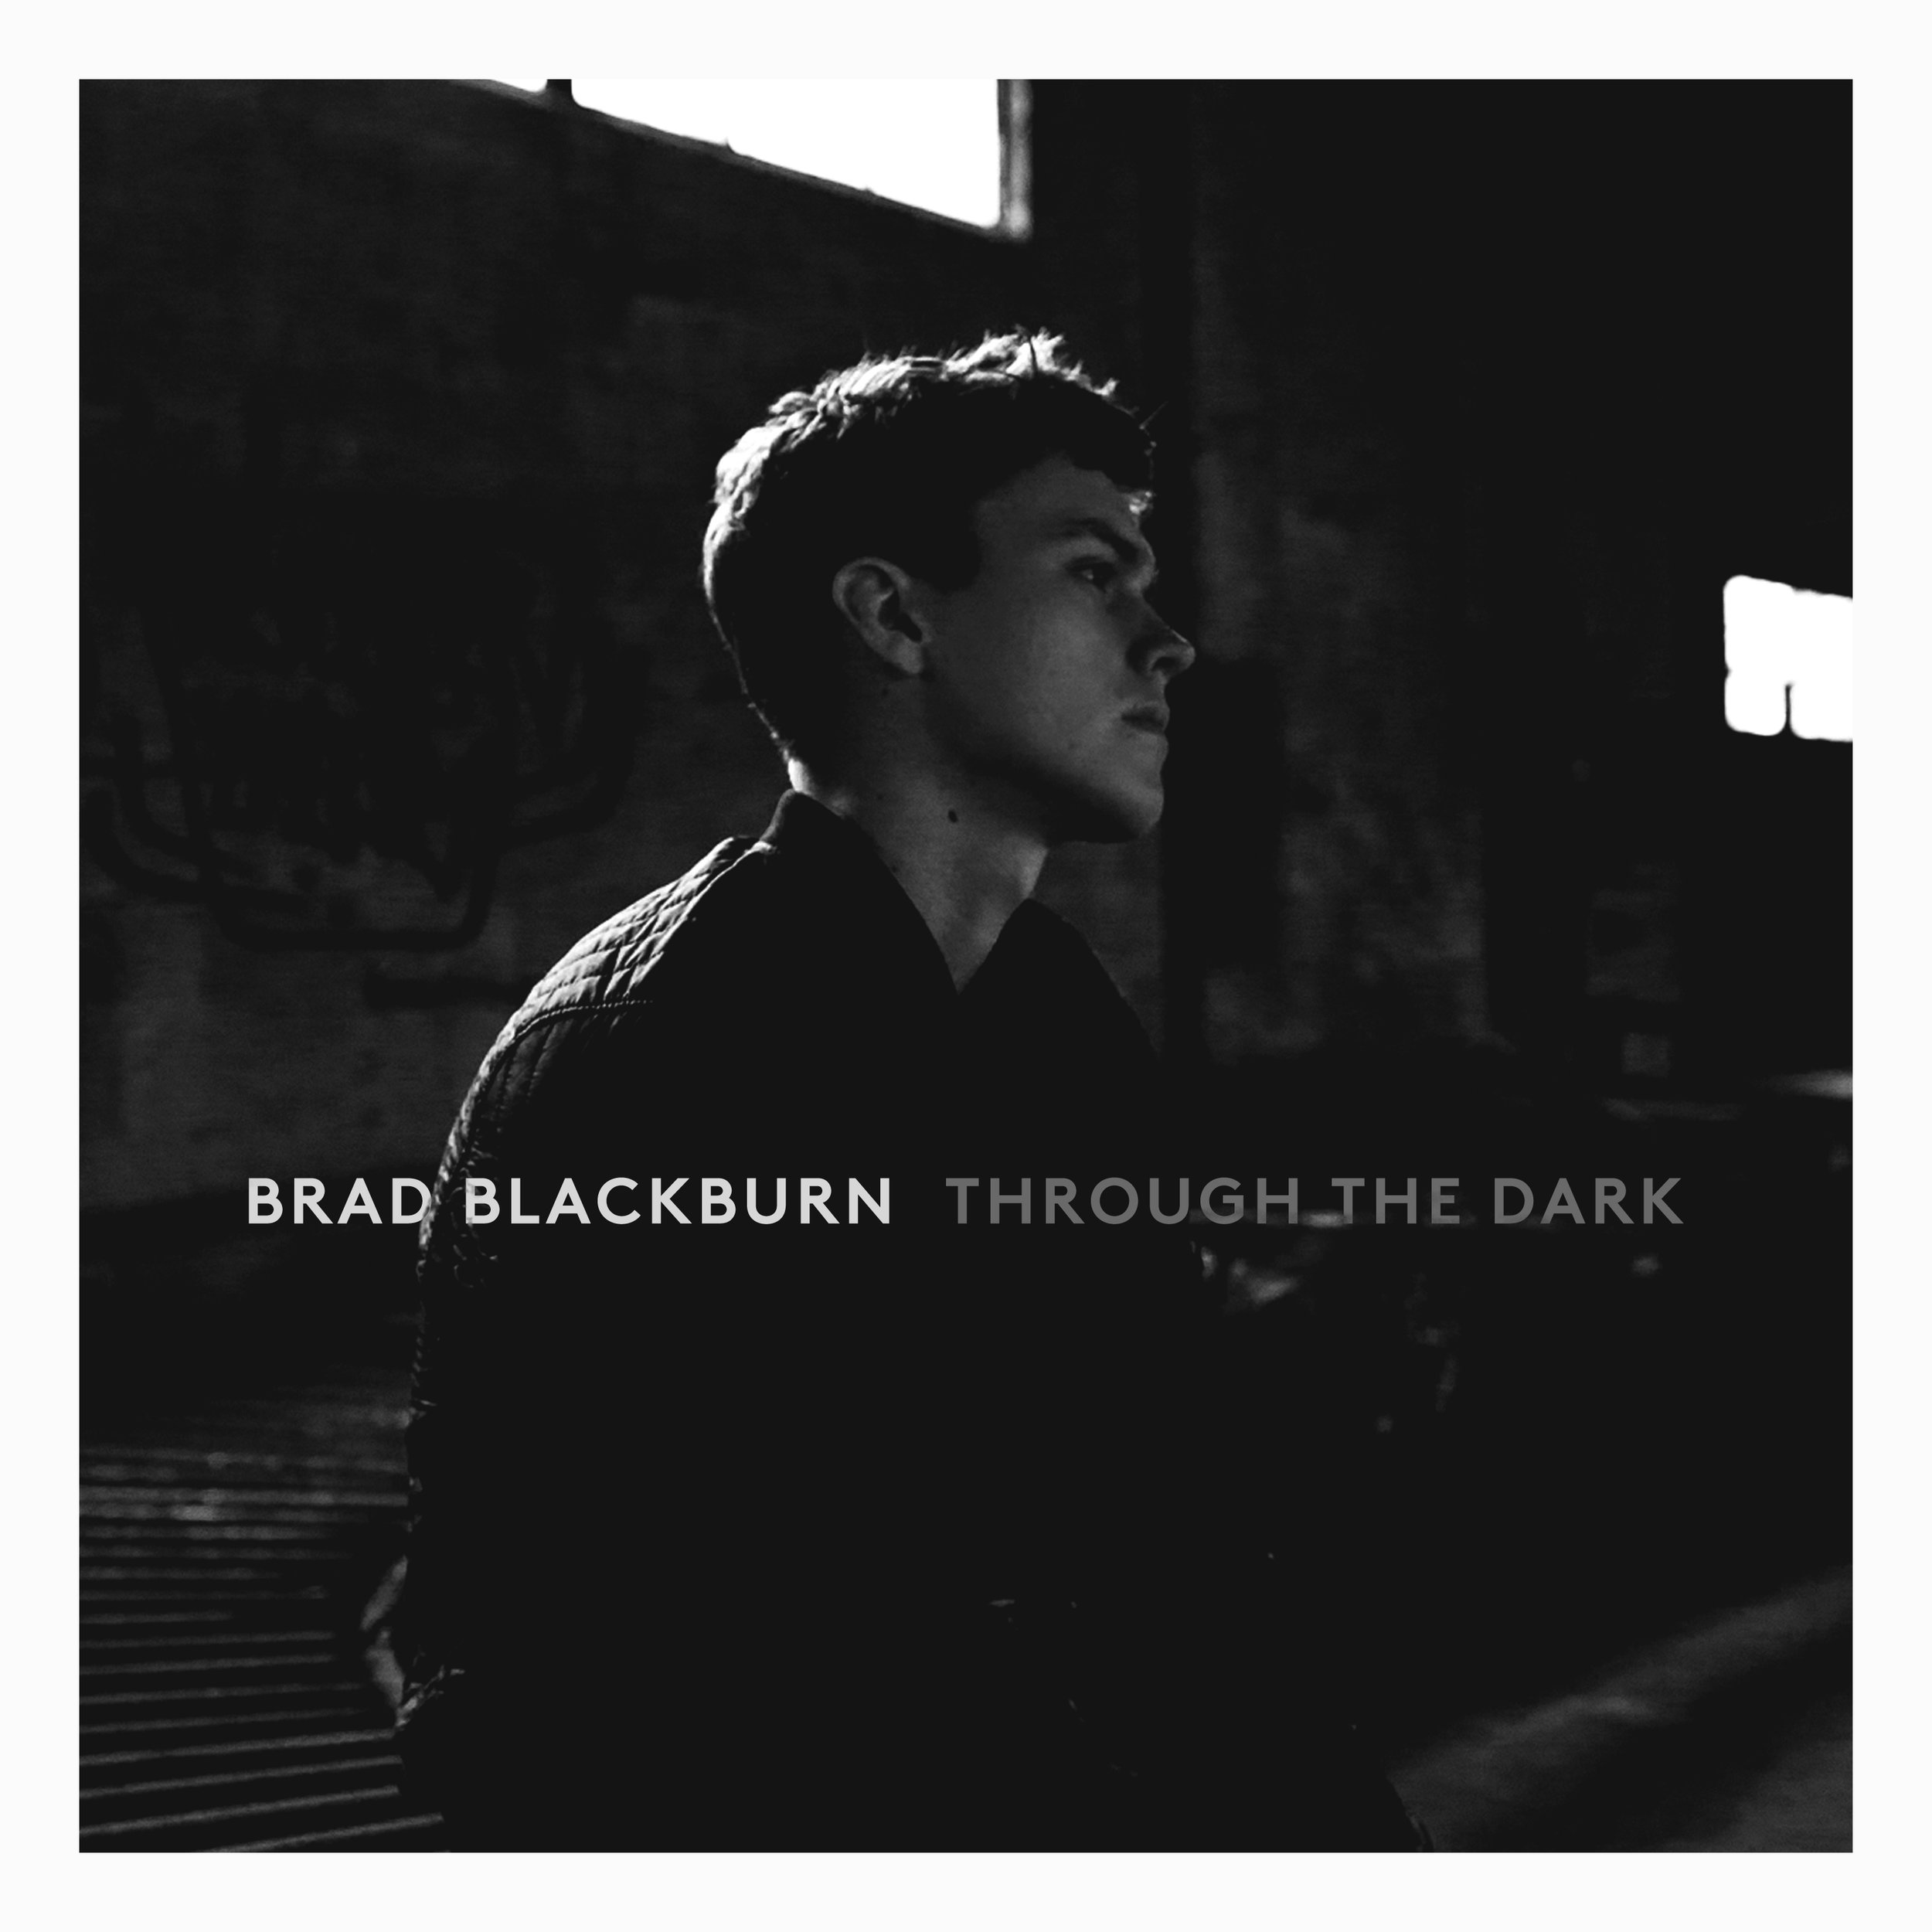 BradBlackburn_ThroughTheDark.jpg